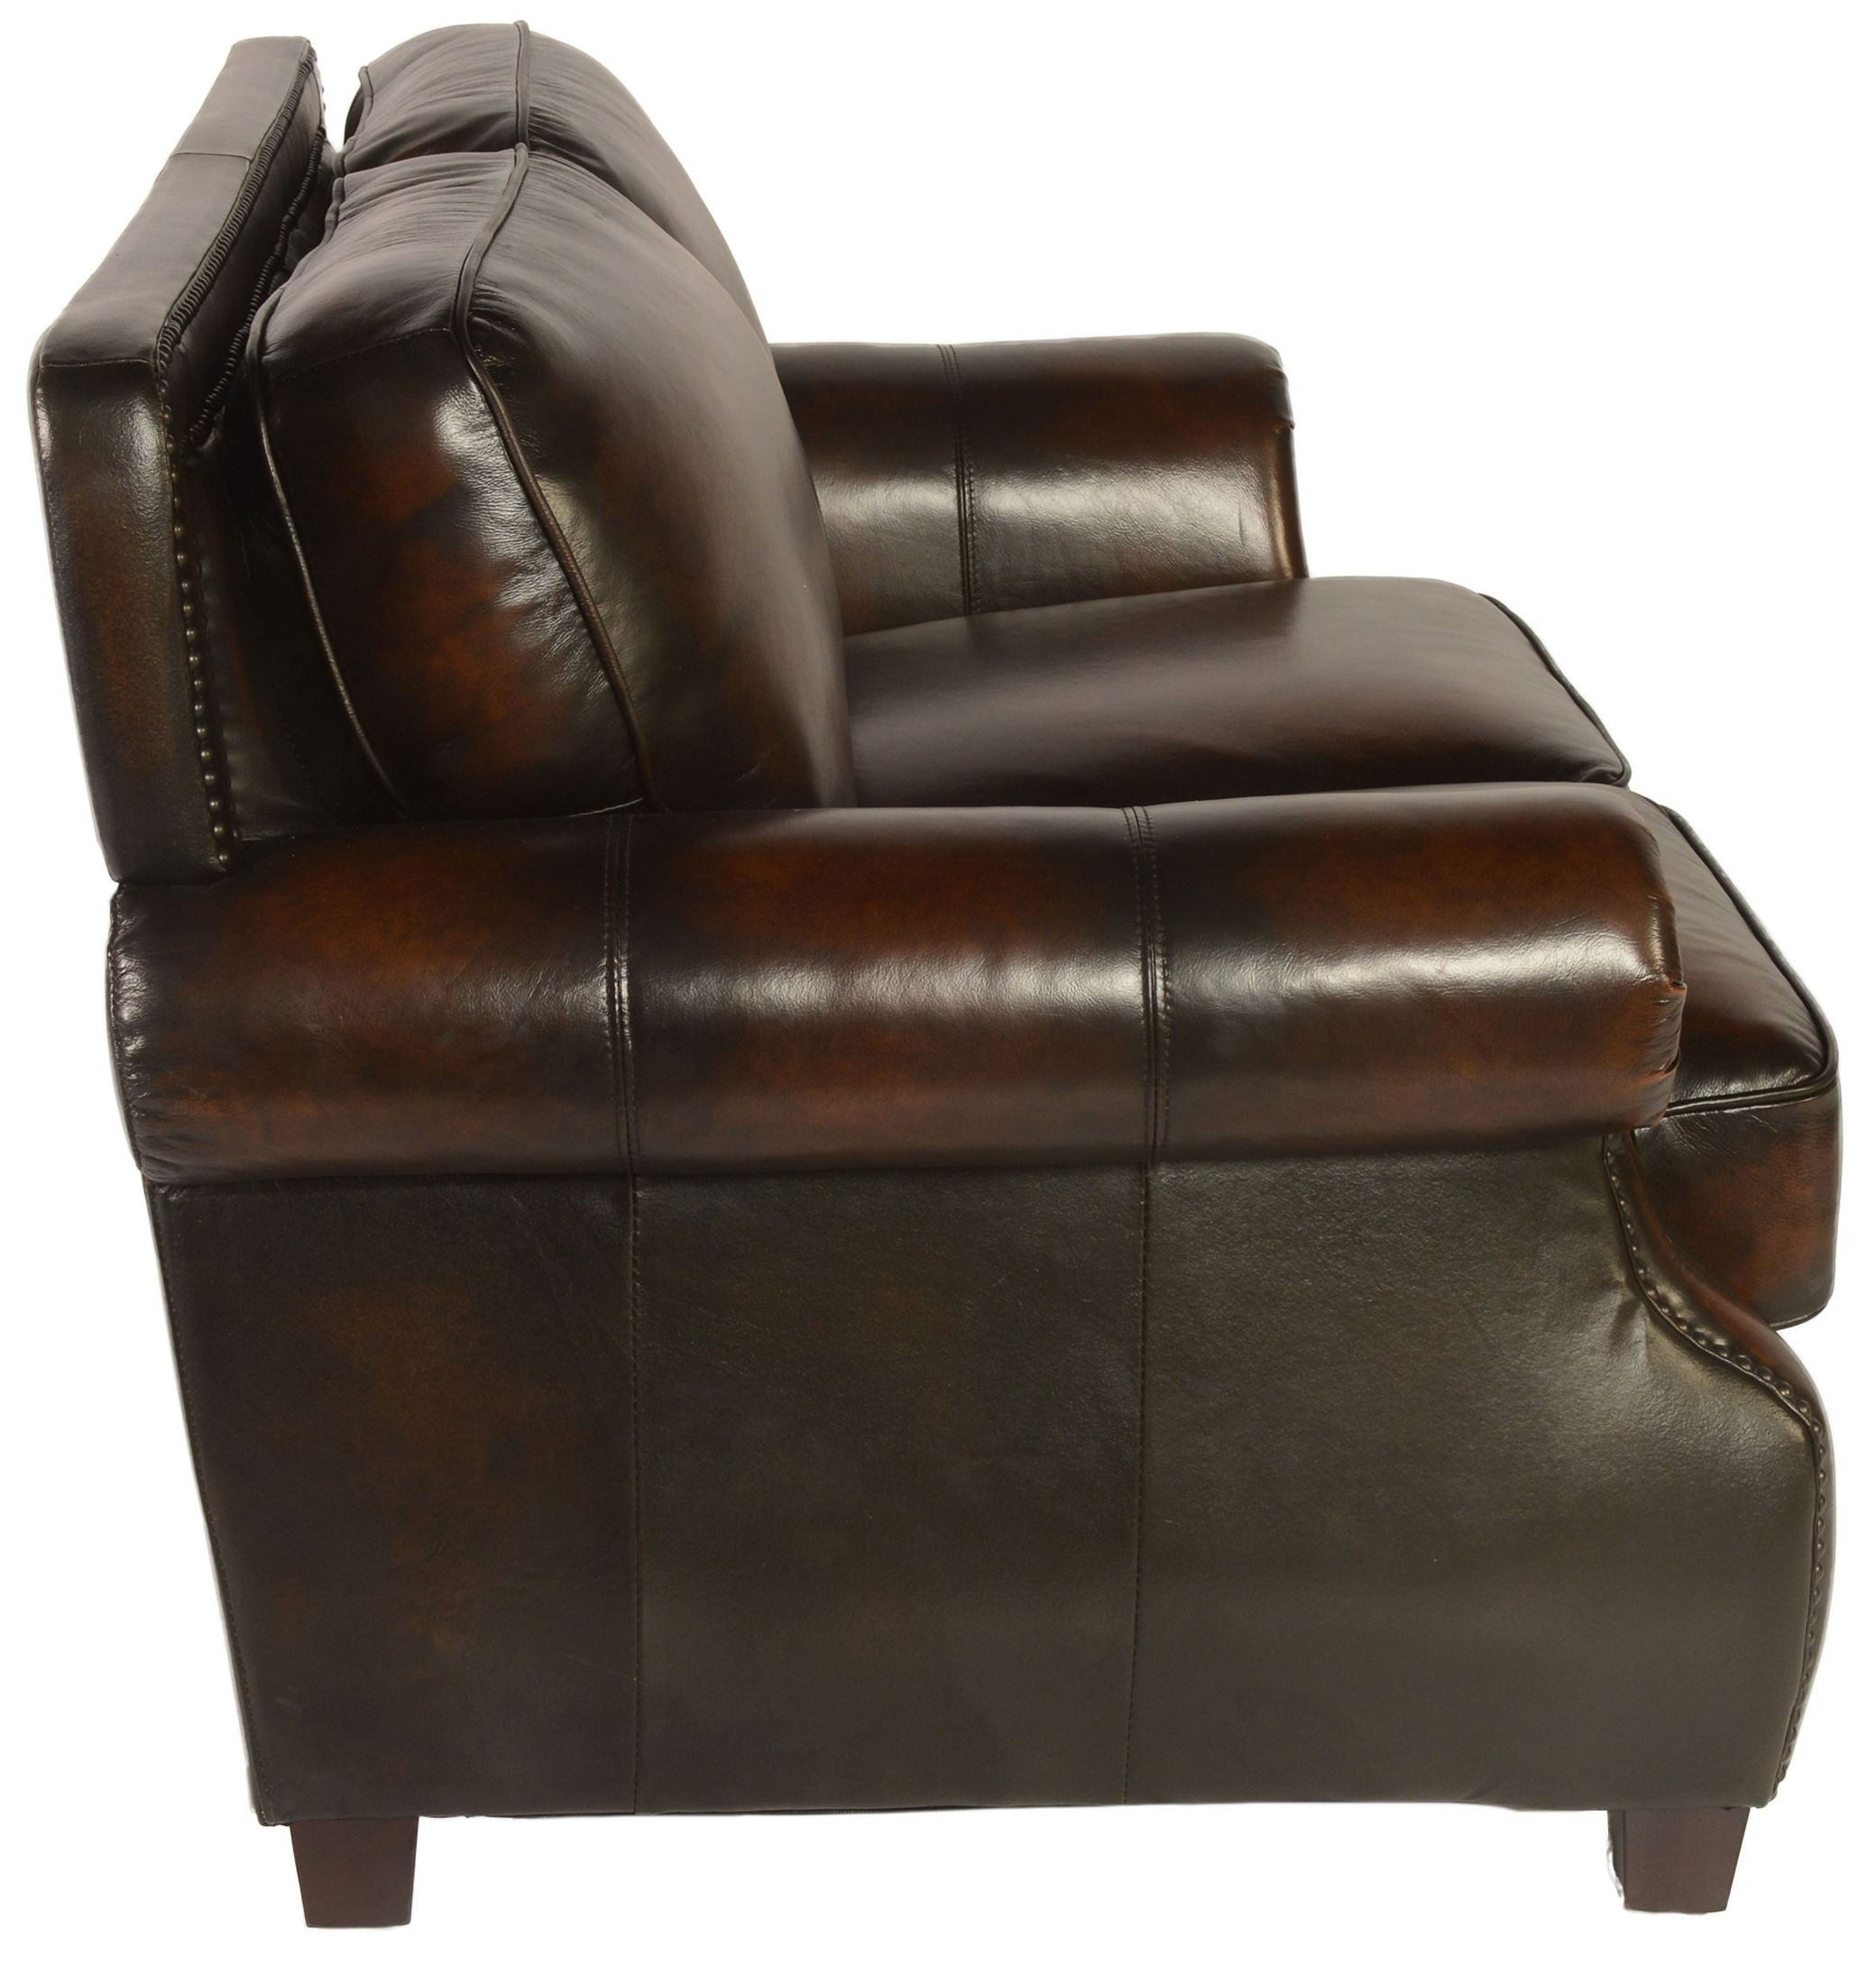 Prato Black Tan Leather Loveseat From Lazzaro Wh 5070 20 3358b Coleman Furniture